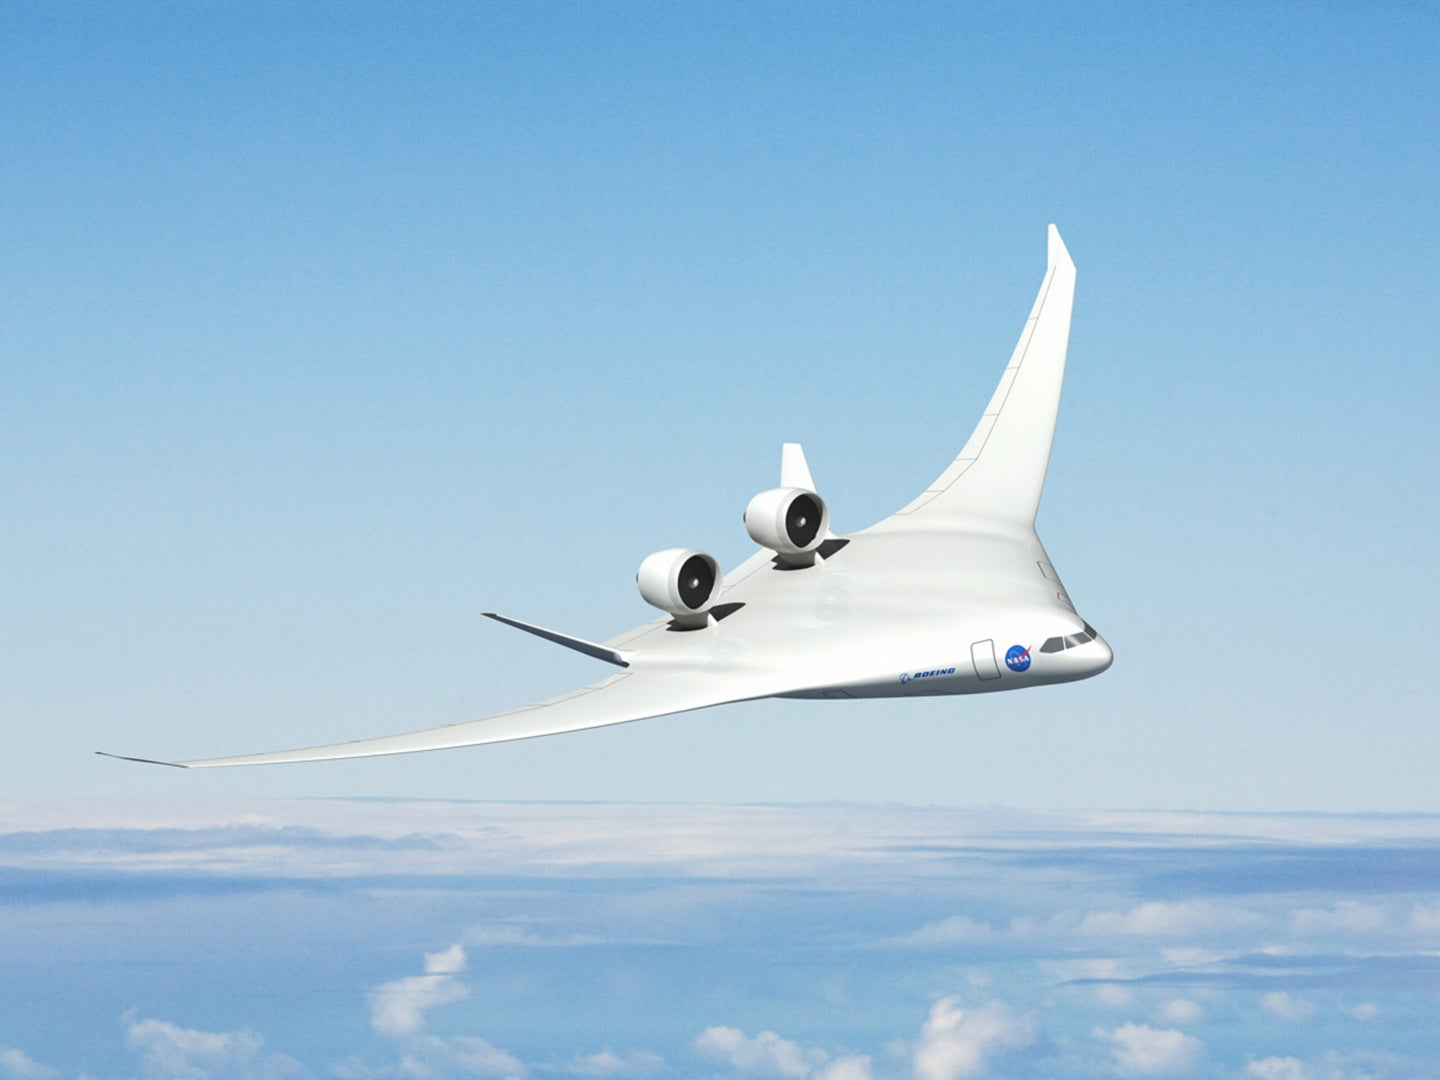 Hybrid Wing Body Aircraft Concept